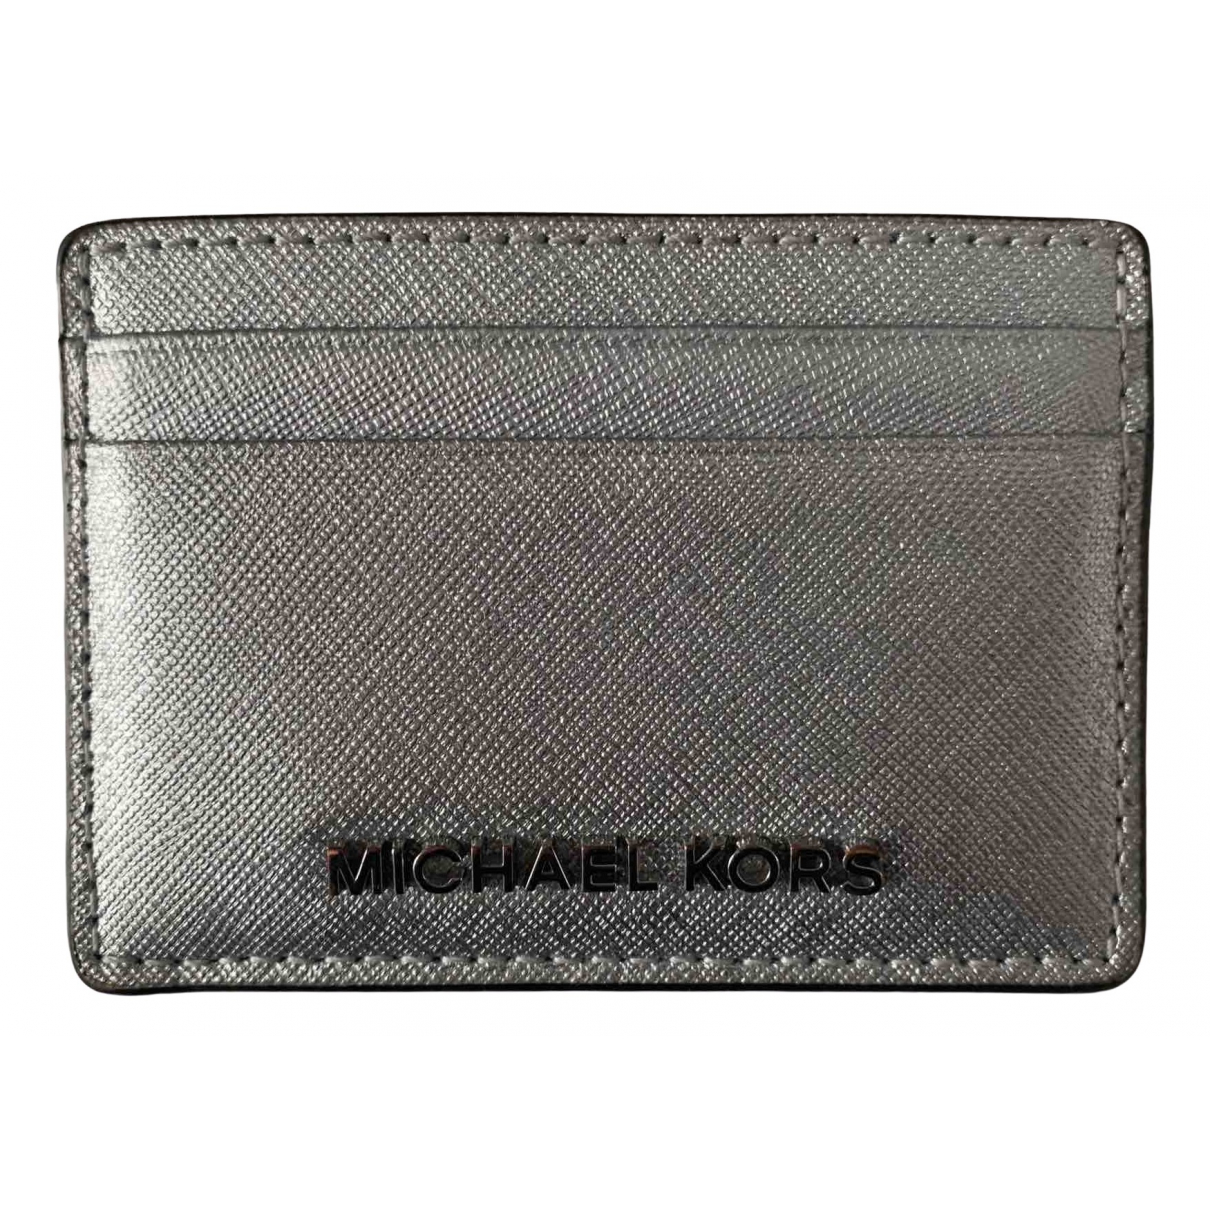 Michael Kors \N Silver Leather Purses, wallet & cases for Women \N